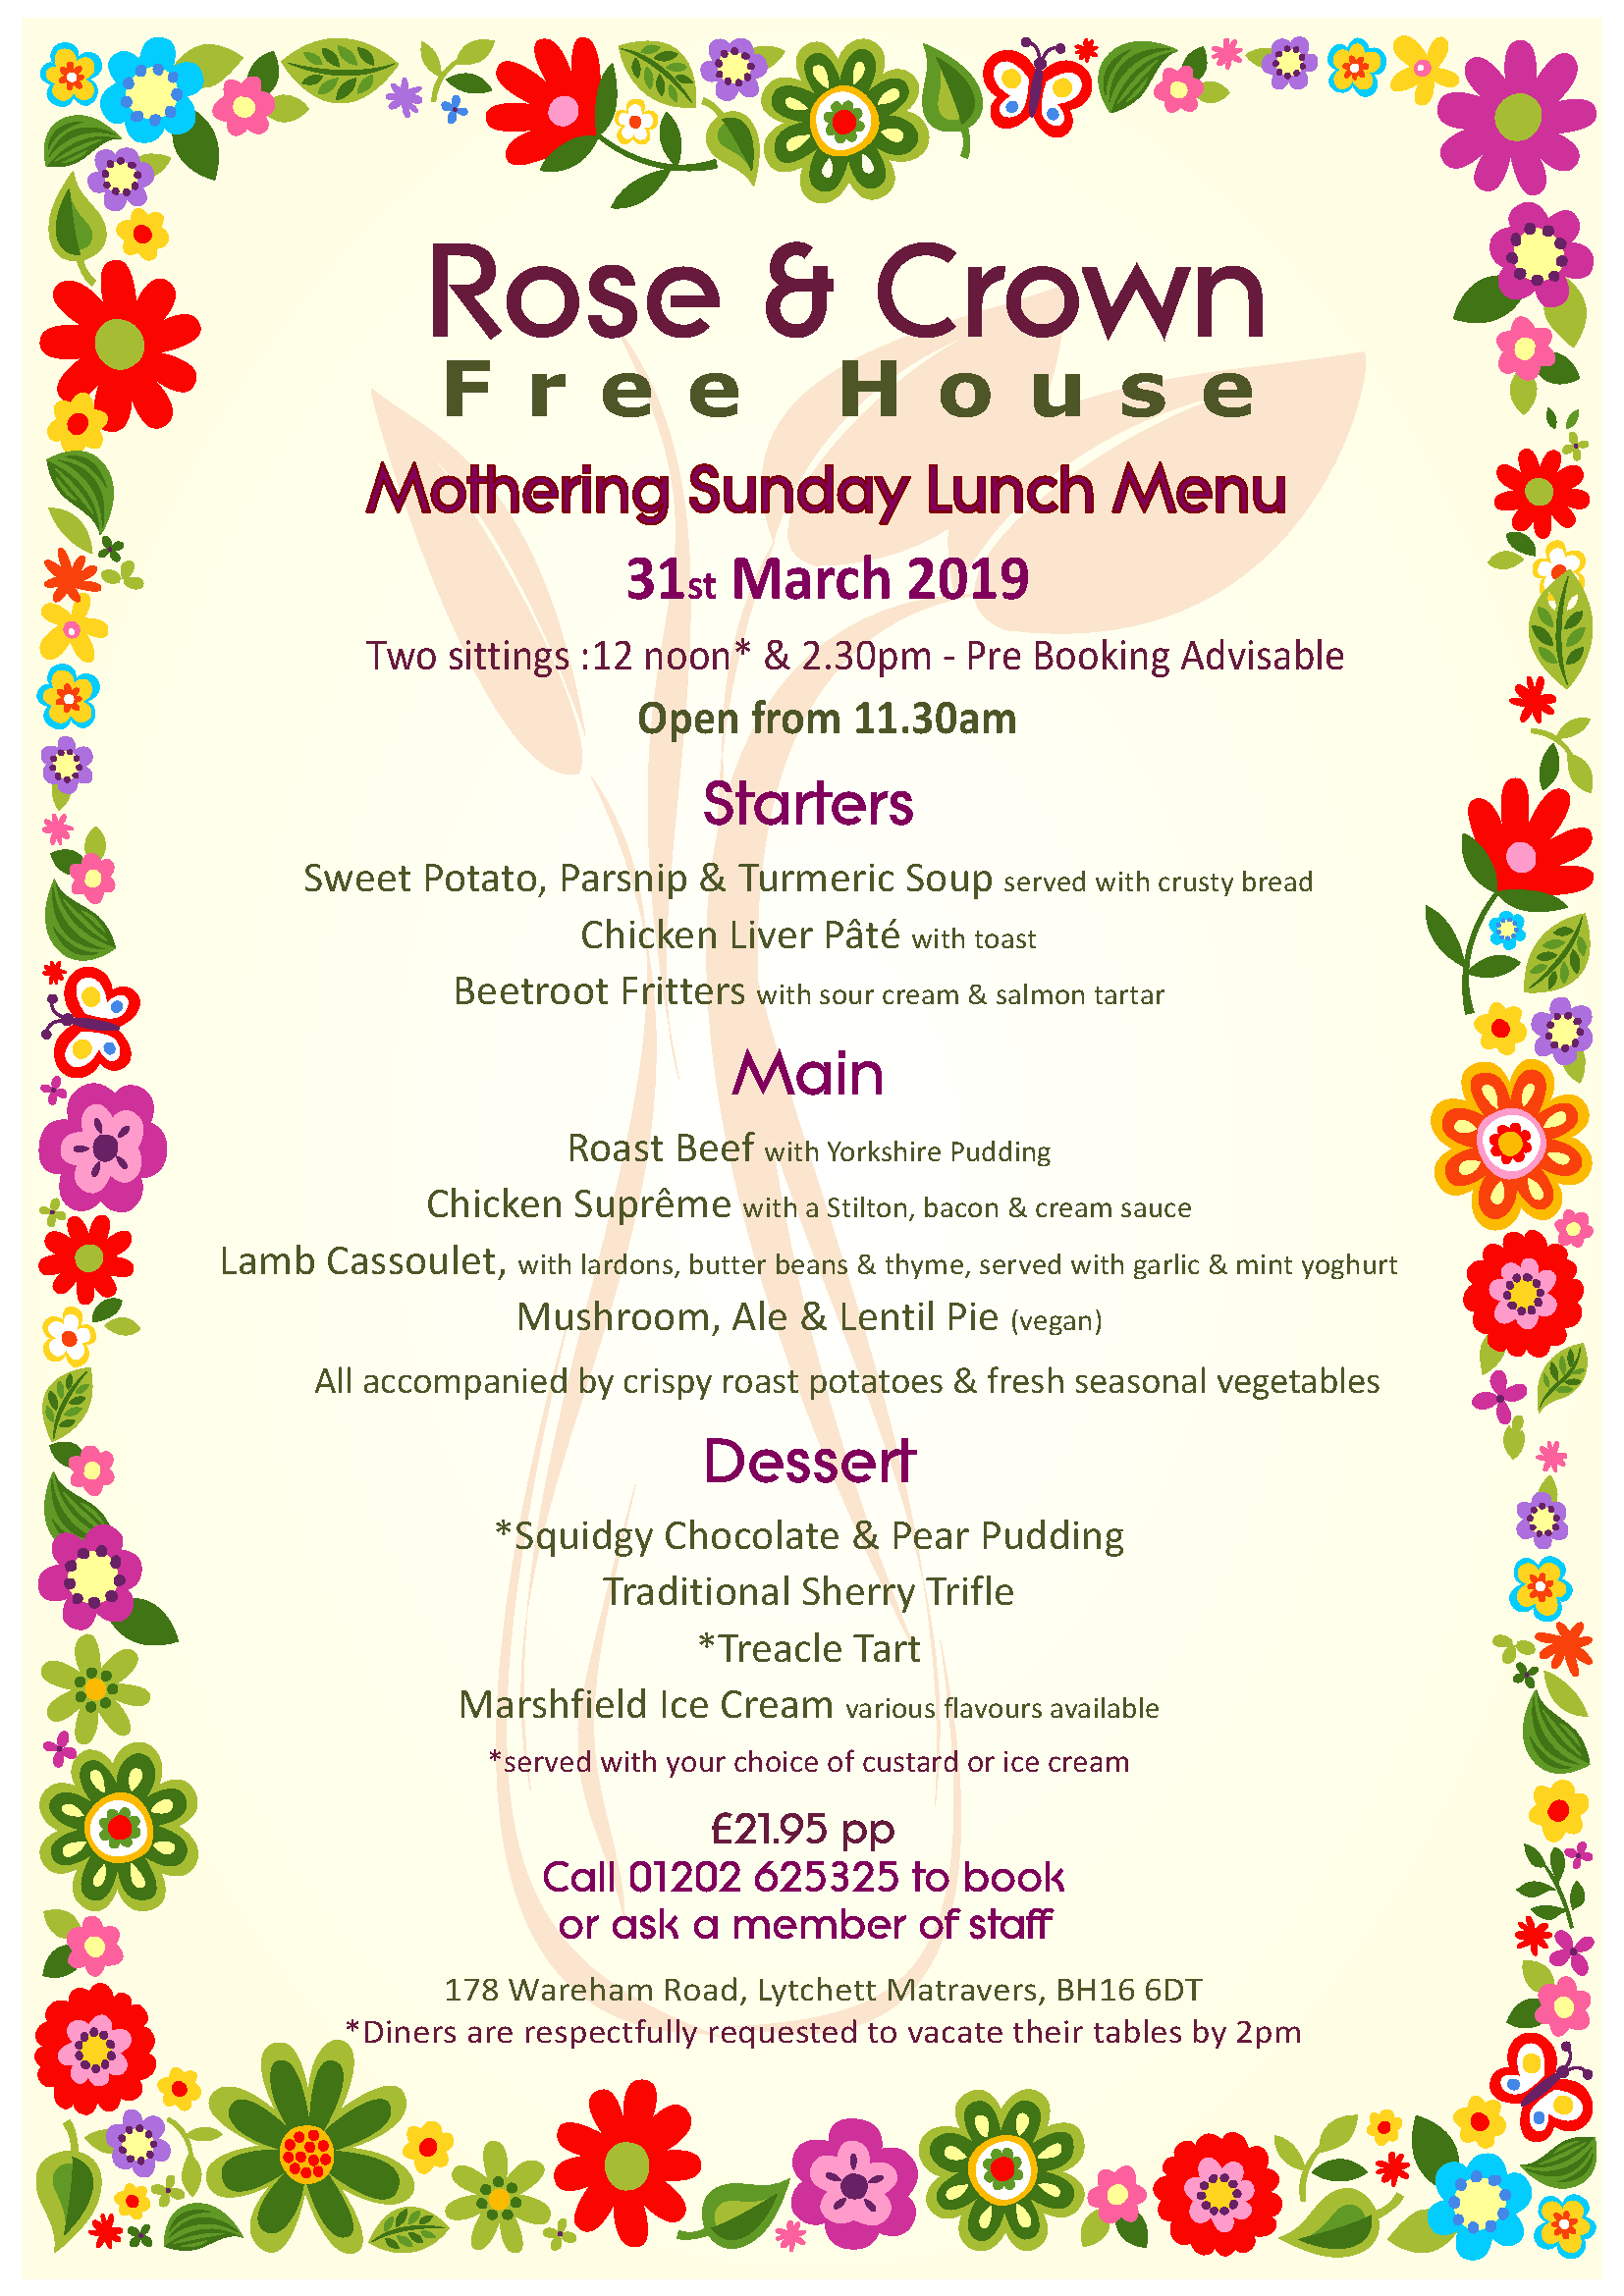 Mothers Day 2019 at The Rose & Crown - Please book early